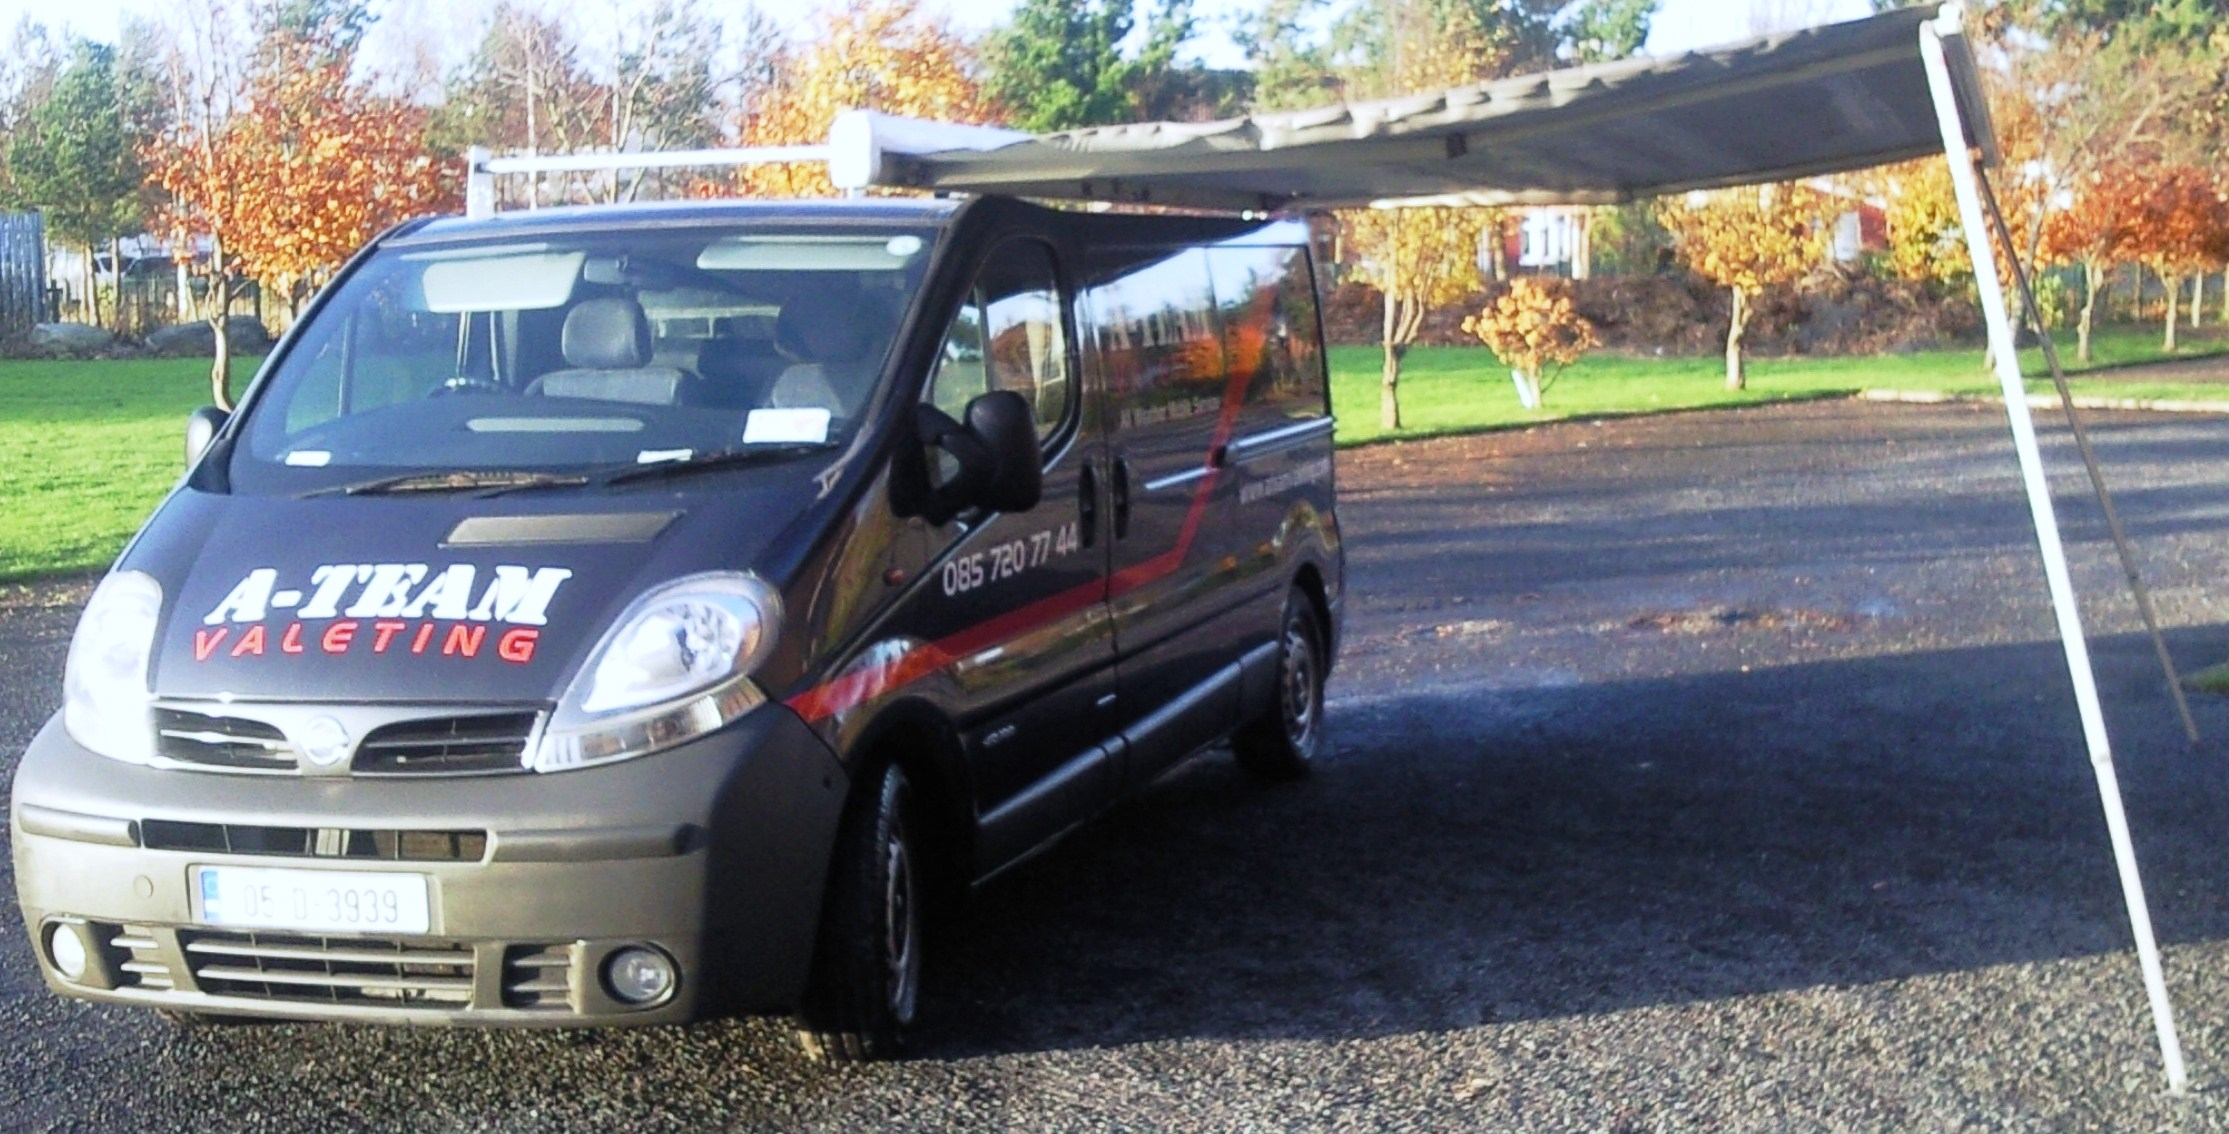 A Team Valeting Car Service Dublin Black Van Side With Canopy Open